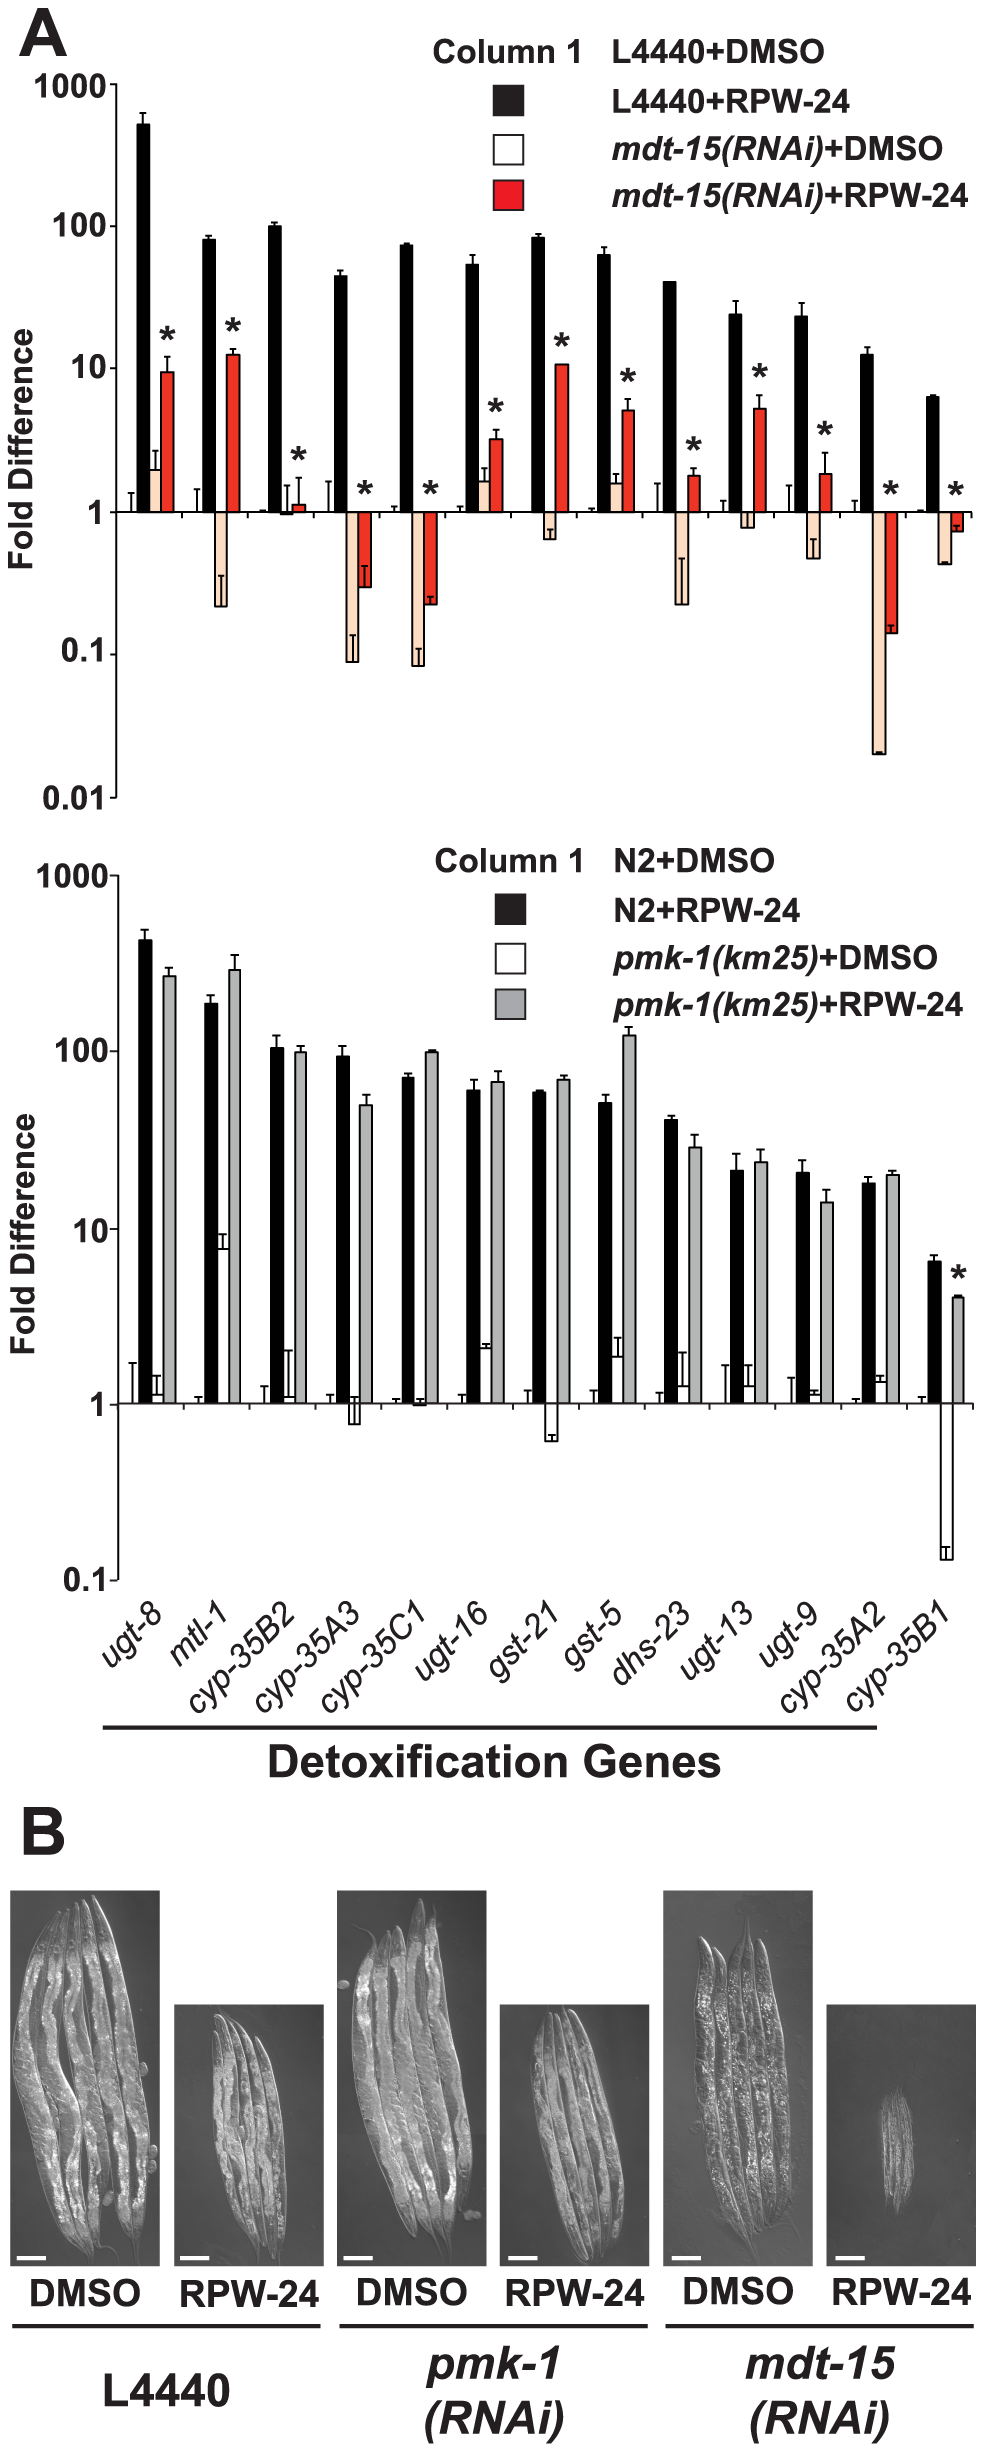 Protection from the toxic effects of the xenobiotic RPW-24 requires MDT-15, but not PMK-1.